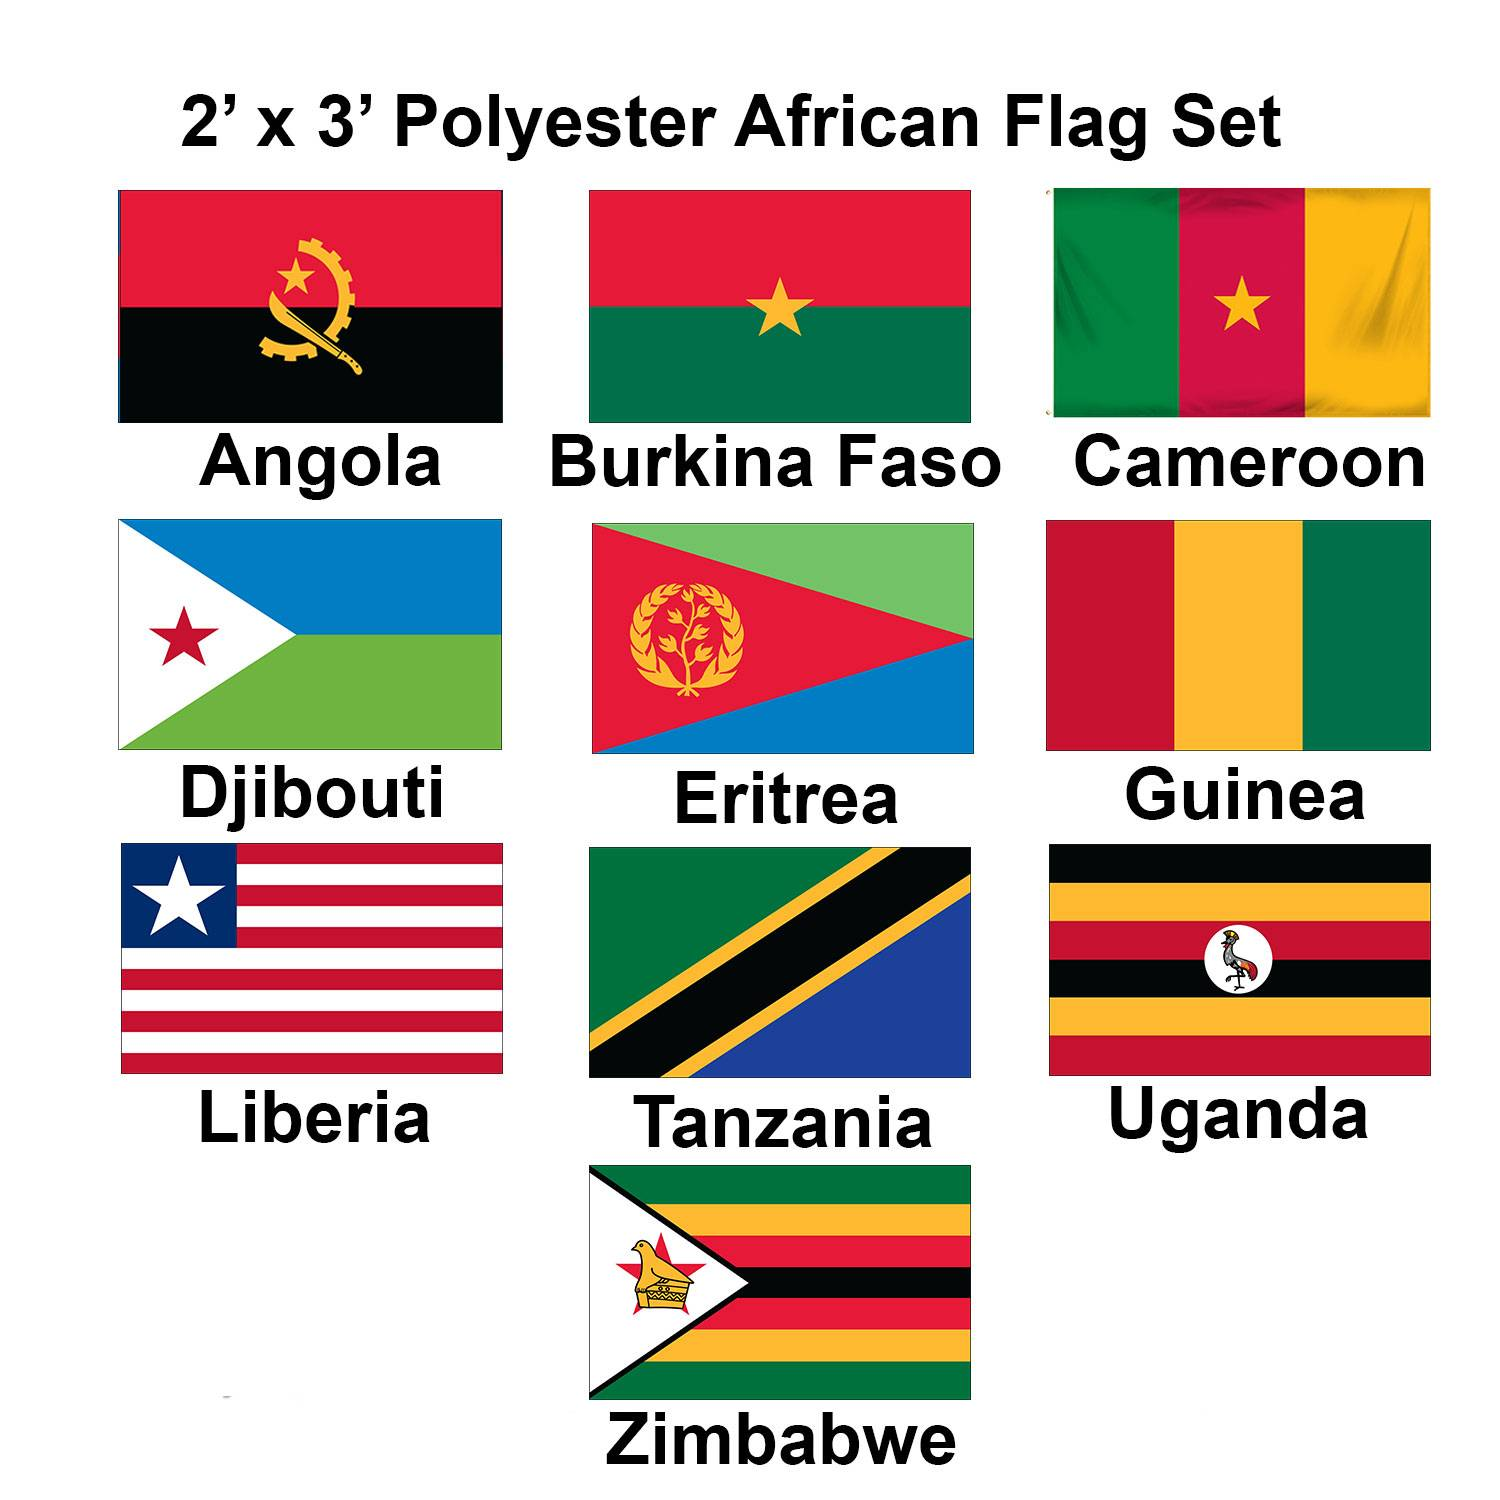 Africa Flags by 1-800 Flags